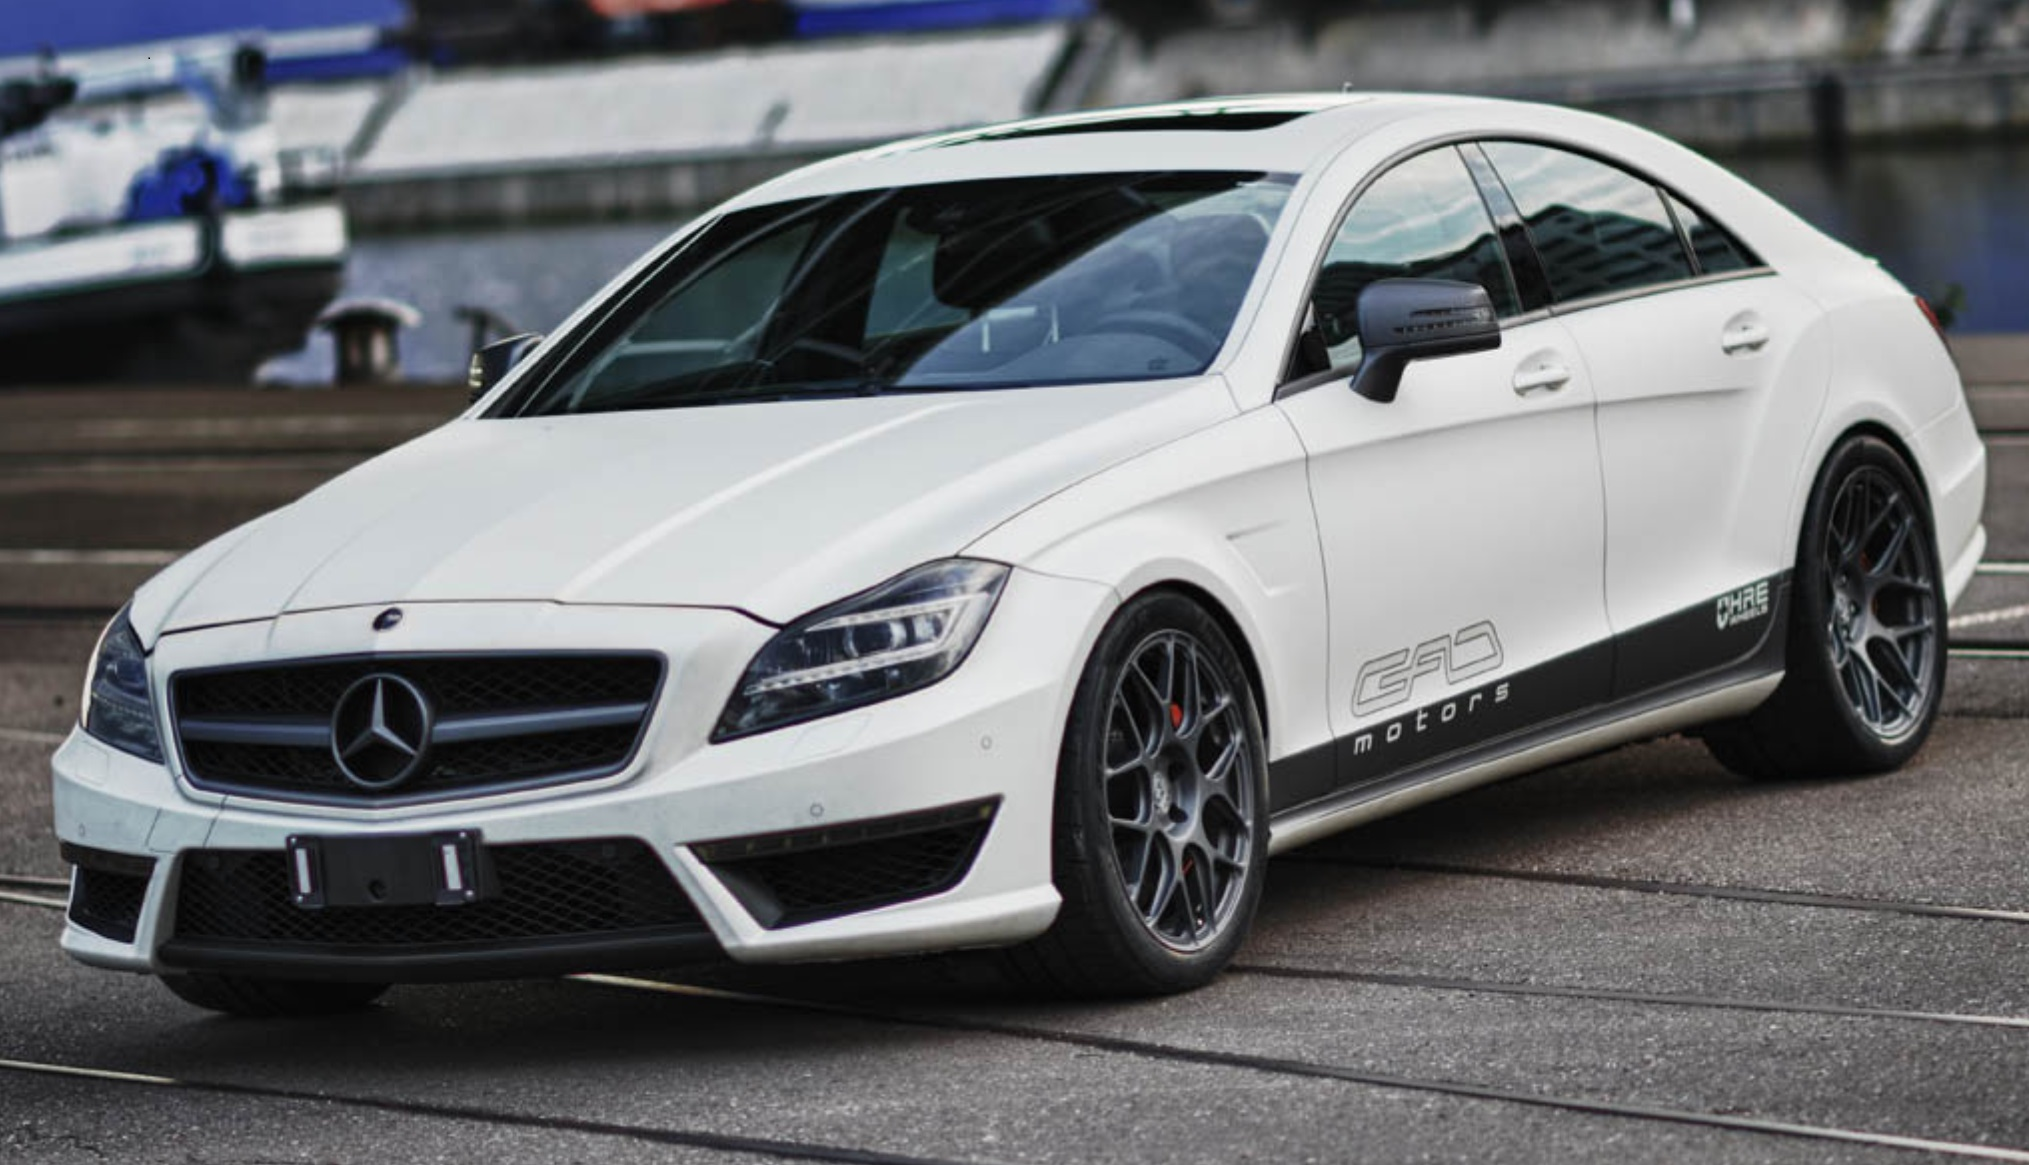 2018 Mercedes Benz CLS63 AMG photo - 3